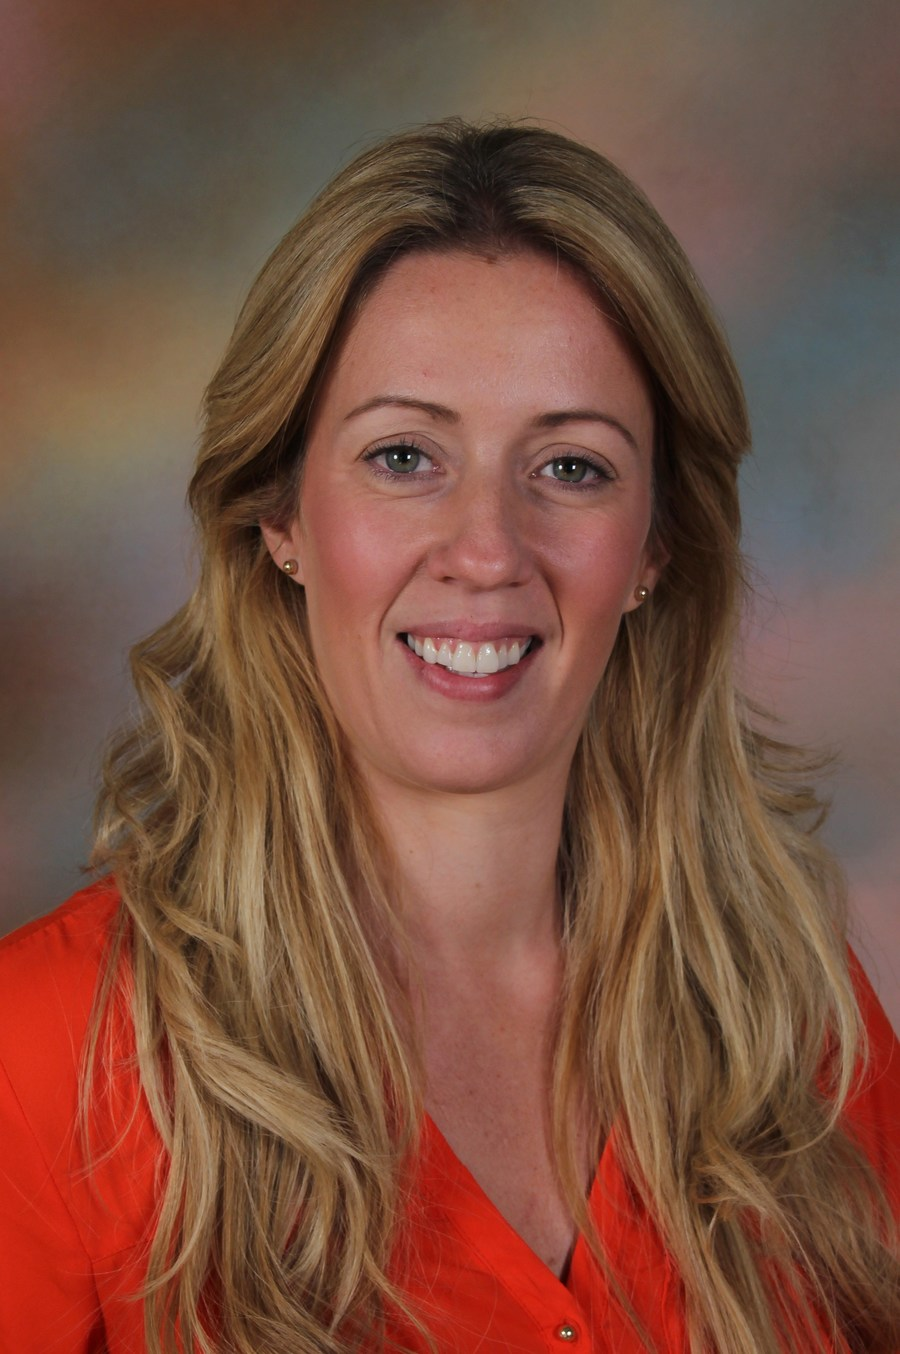 Miss L Young - Head of School